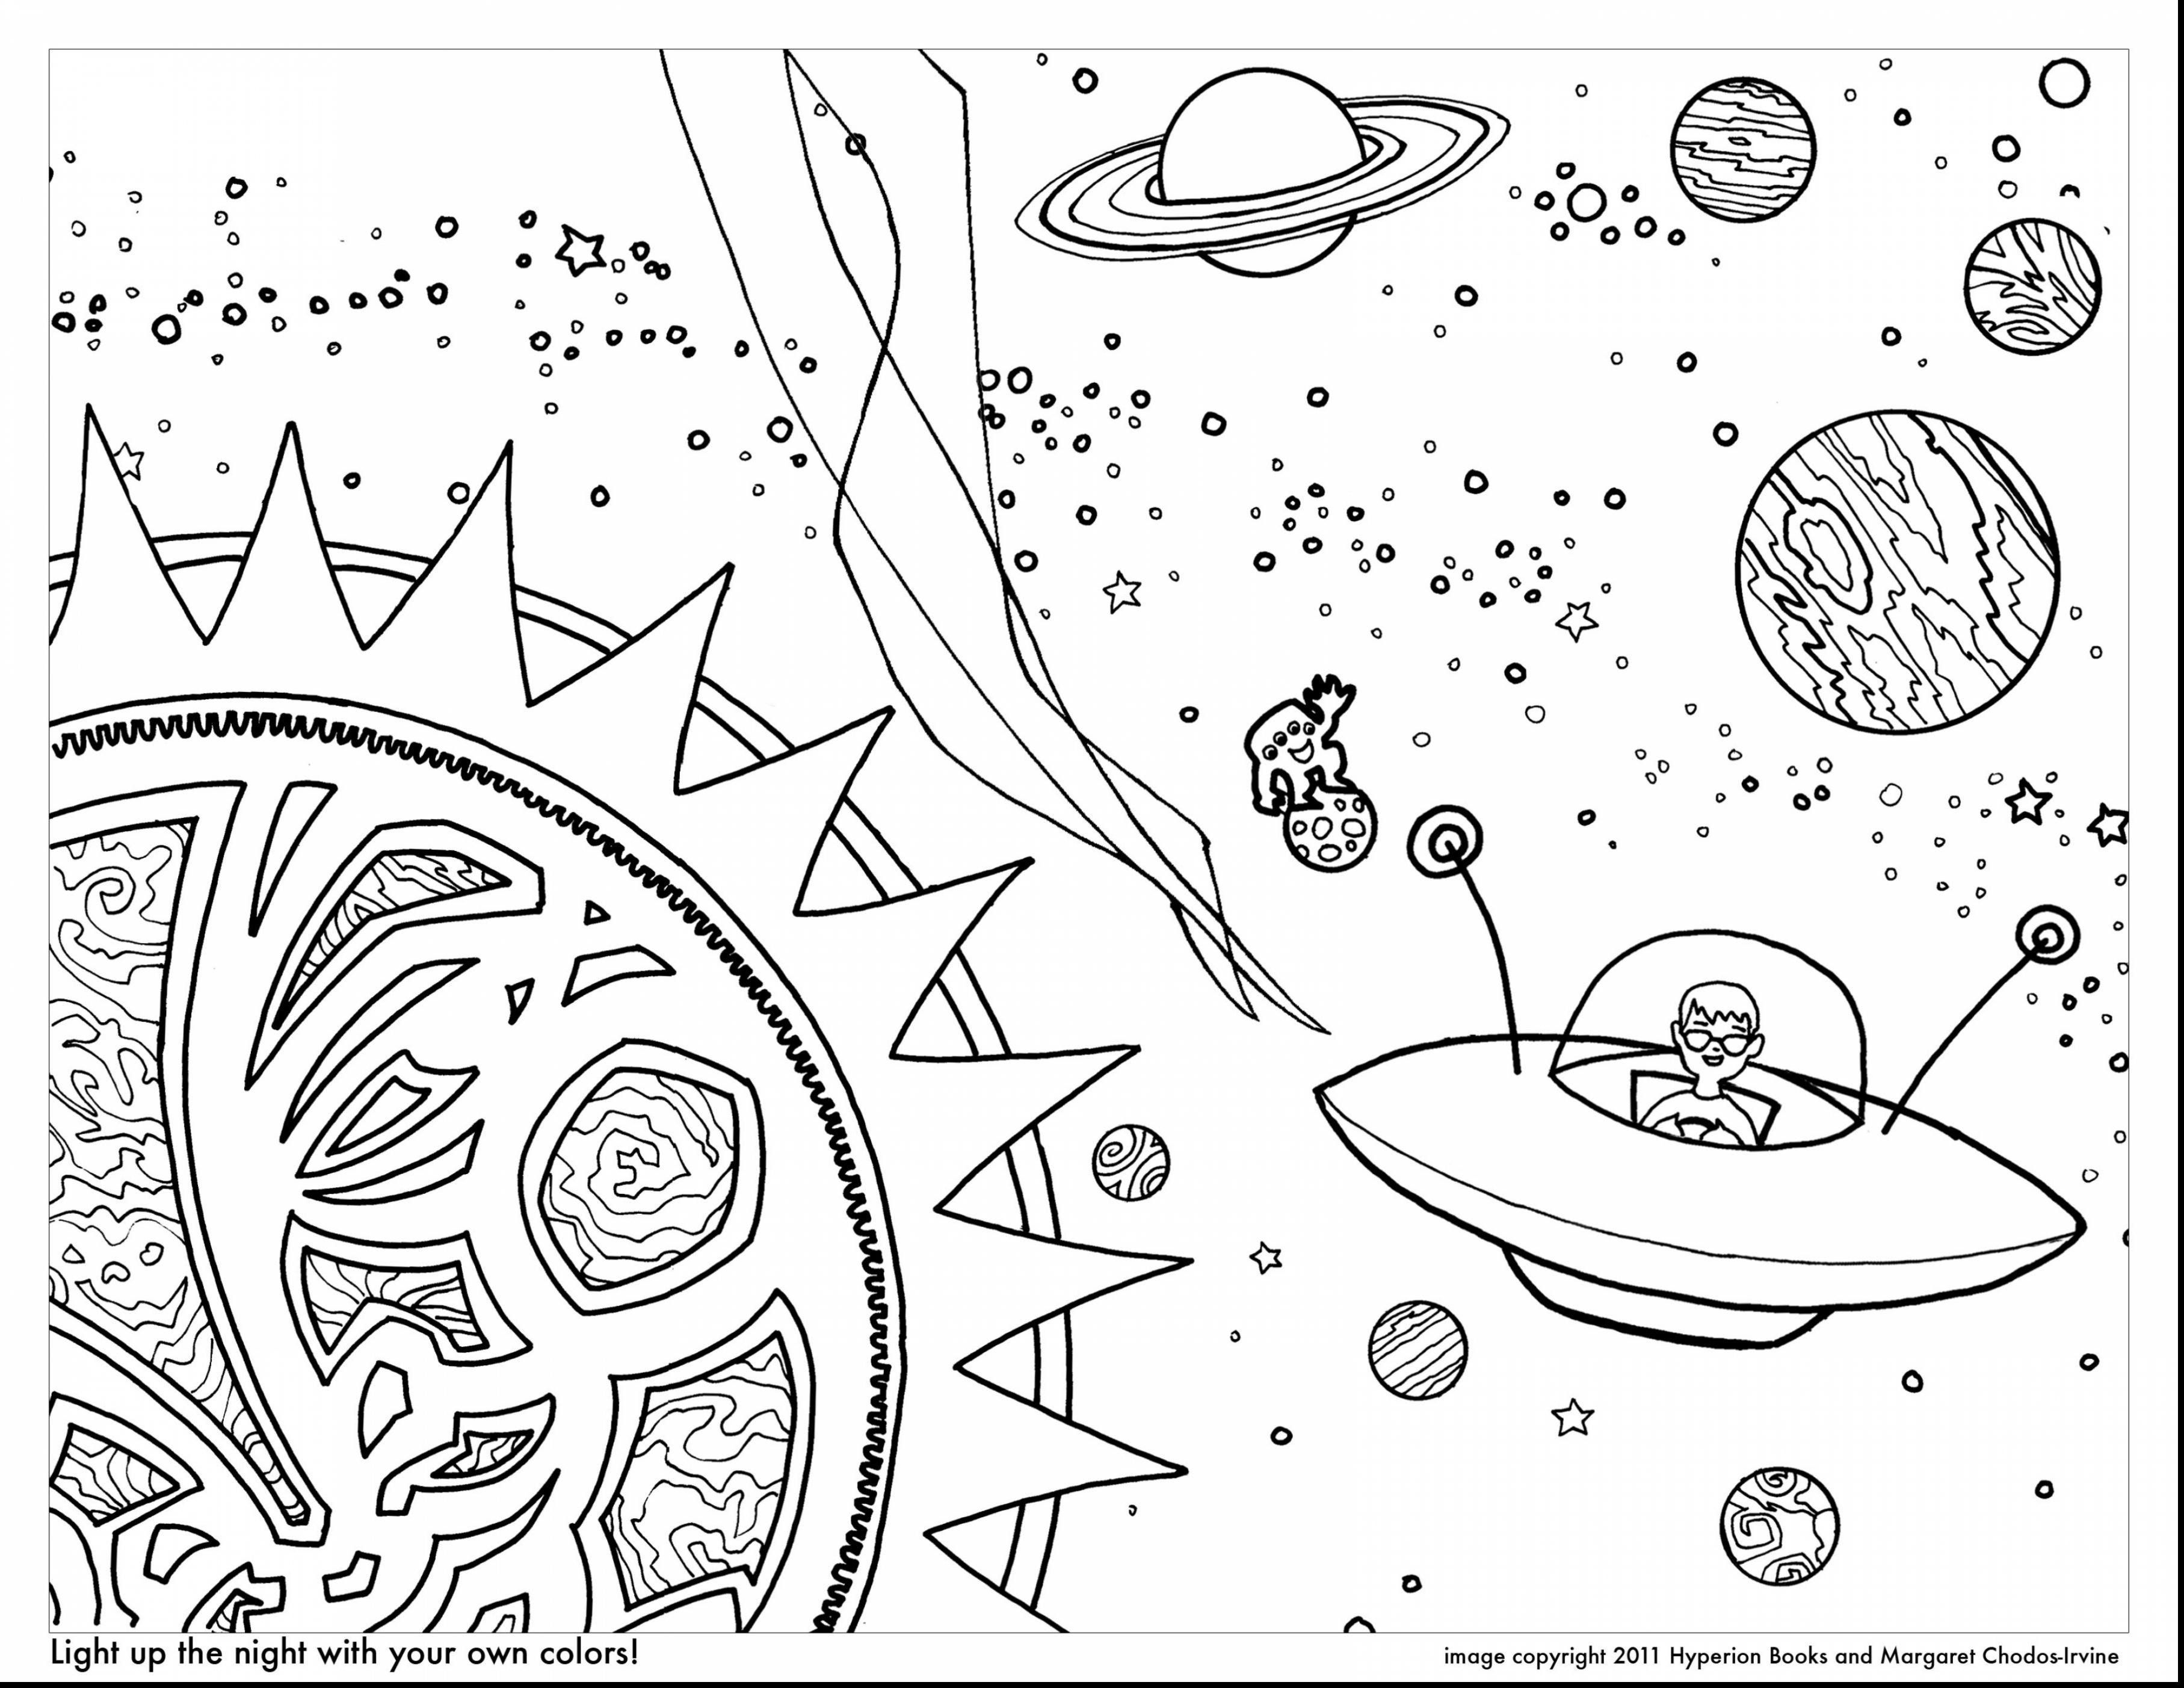 Solar System Coloring Pages Beautiful Coloring Ideas Coloring Pages For Year Olds Awesome S New Space Coloring Pages Planet Coloring Pages Bird Coloring Pages [ 2805 x 3630 Pixel ]